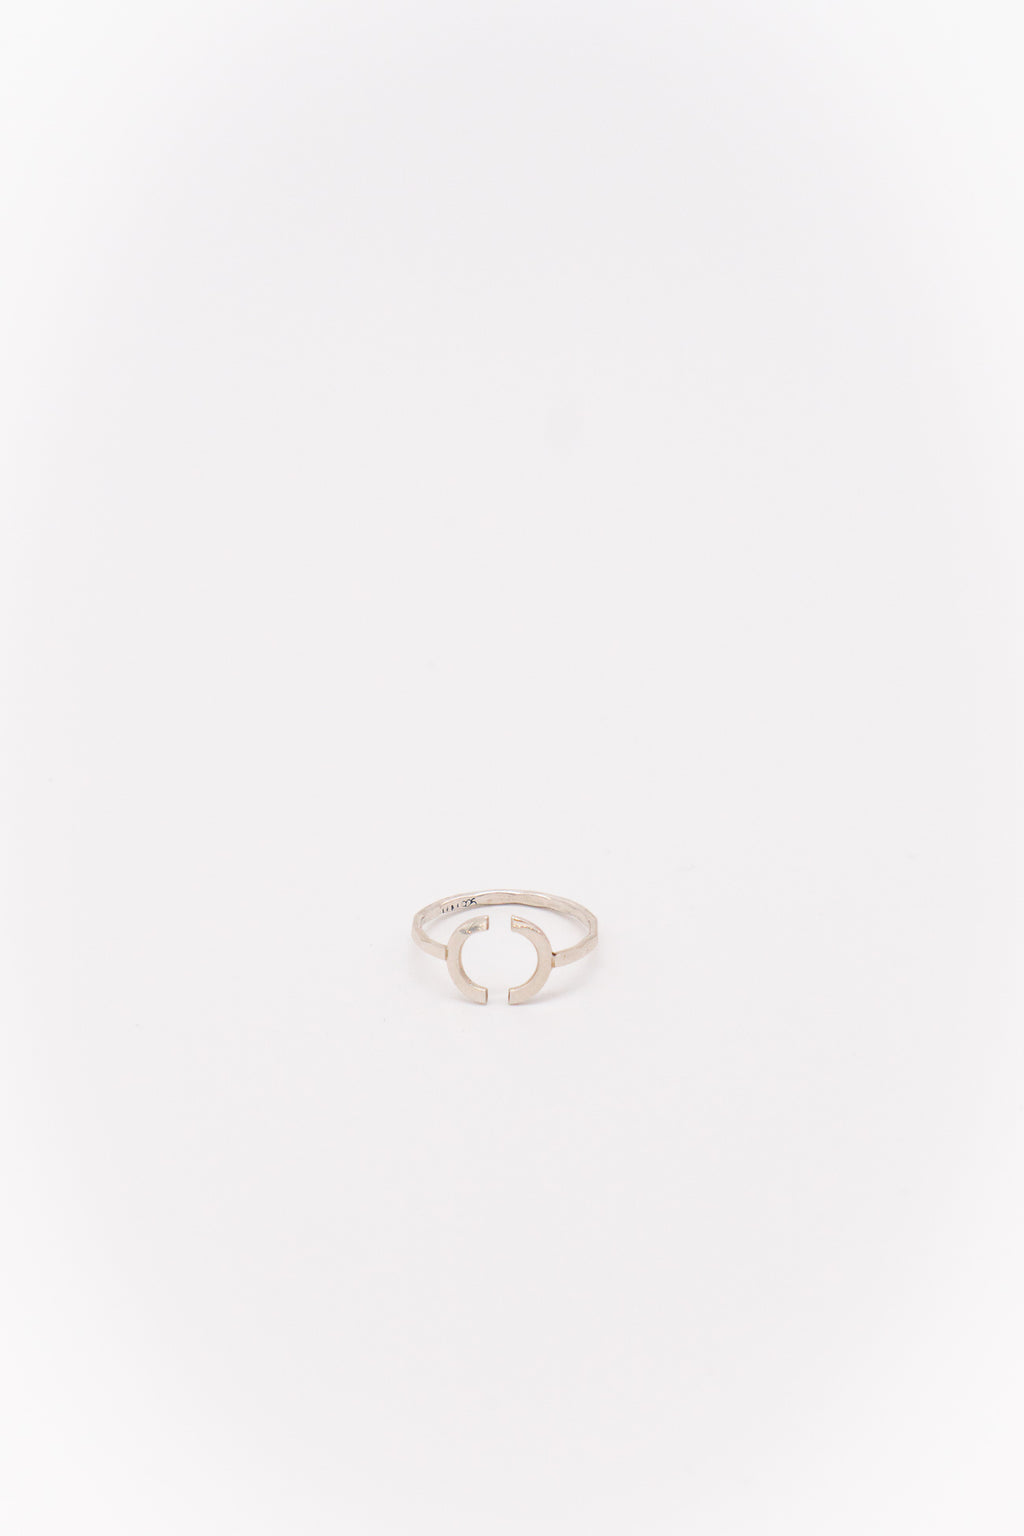 Melissa Joy Manning Sterling Silver Open Semicircle Ring